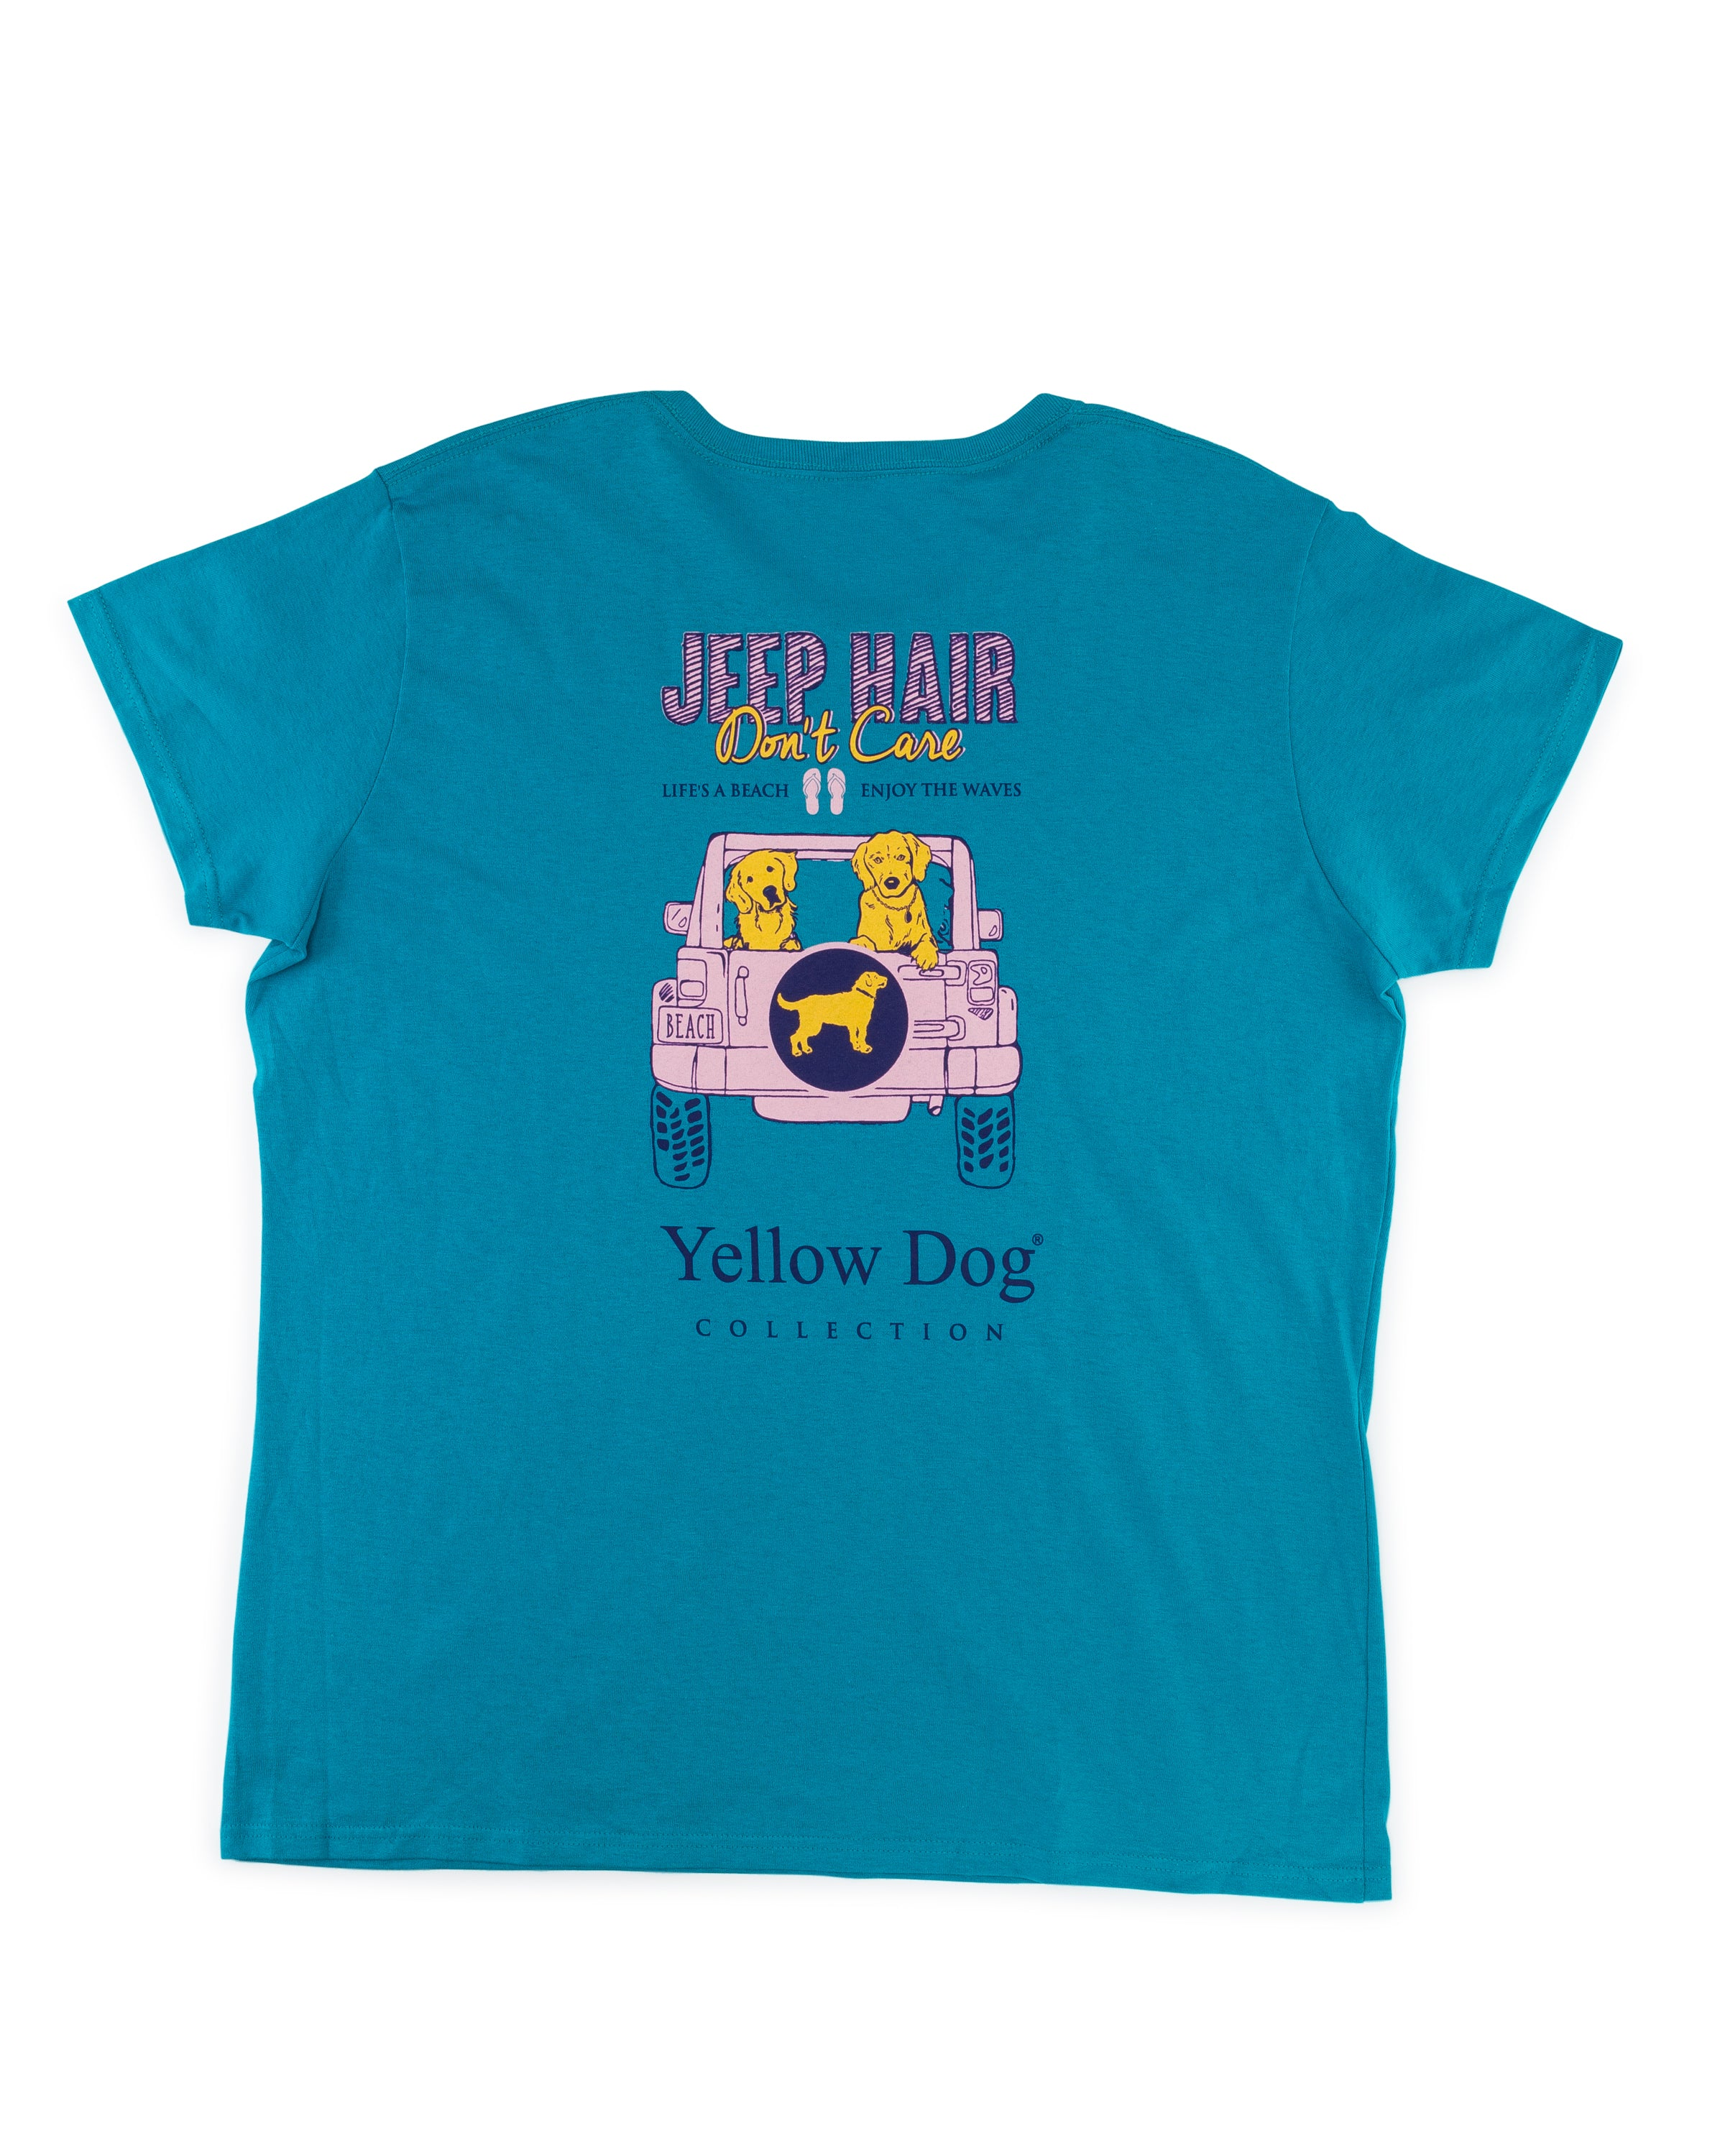 Women's Short Sleeve t-shirt Yellow Dog Collection: Jeep Hair